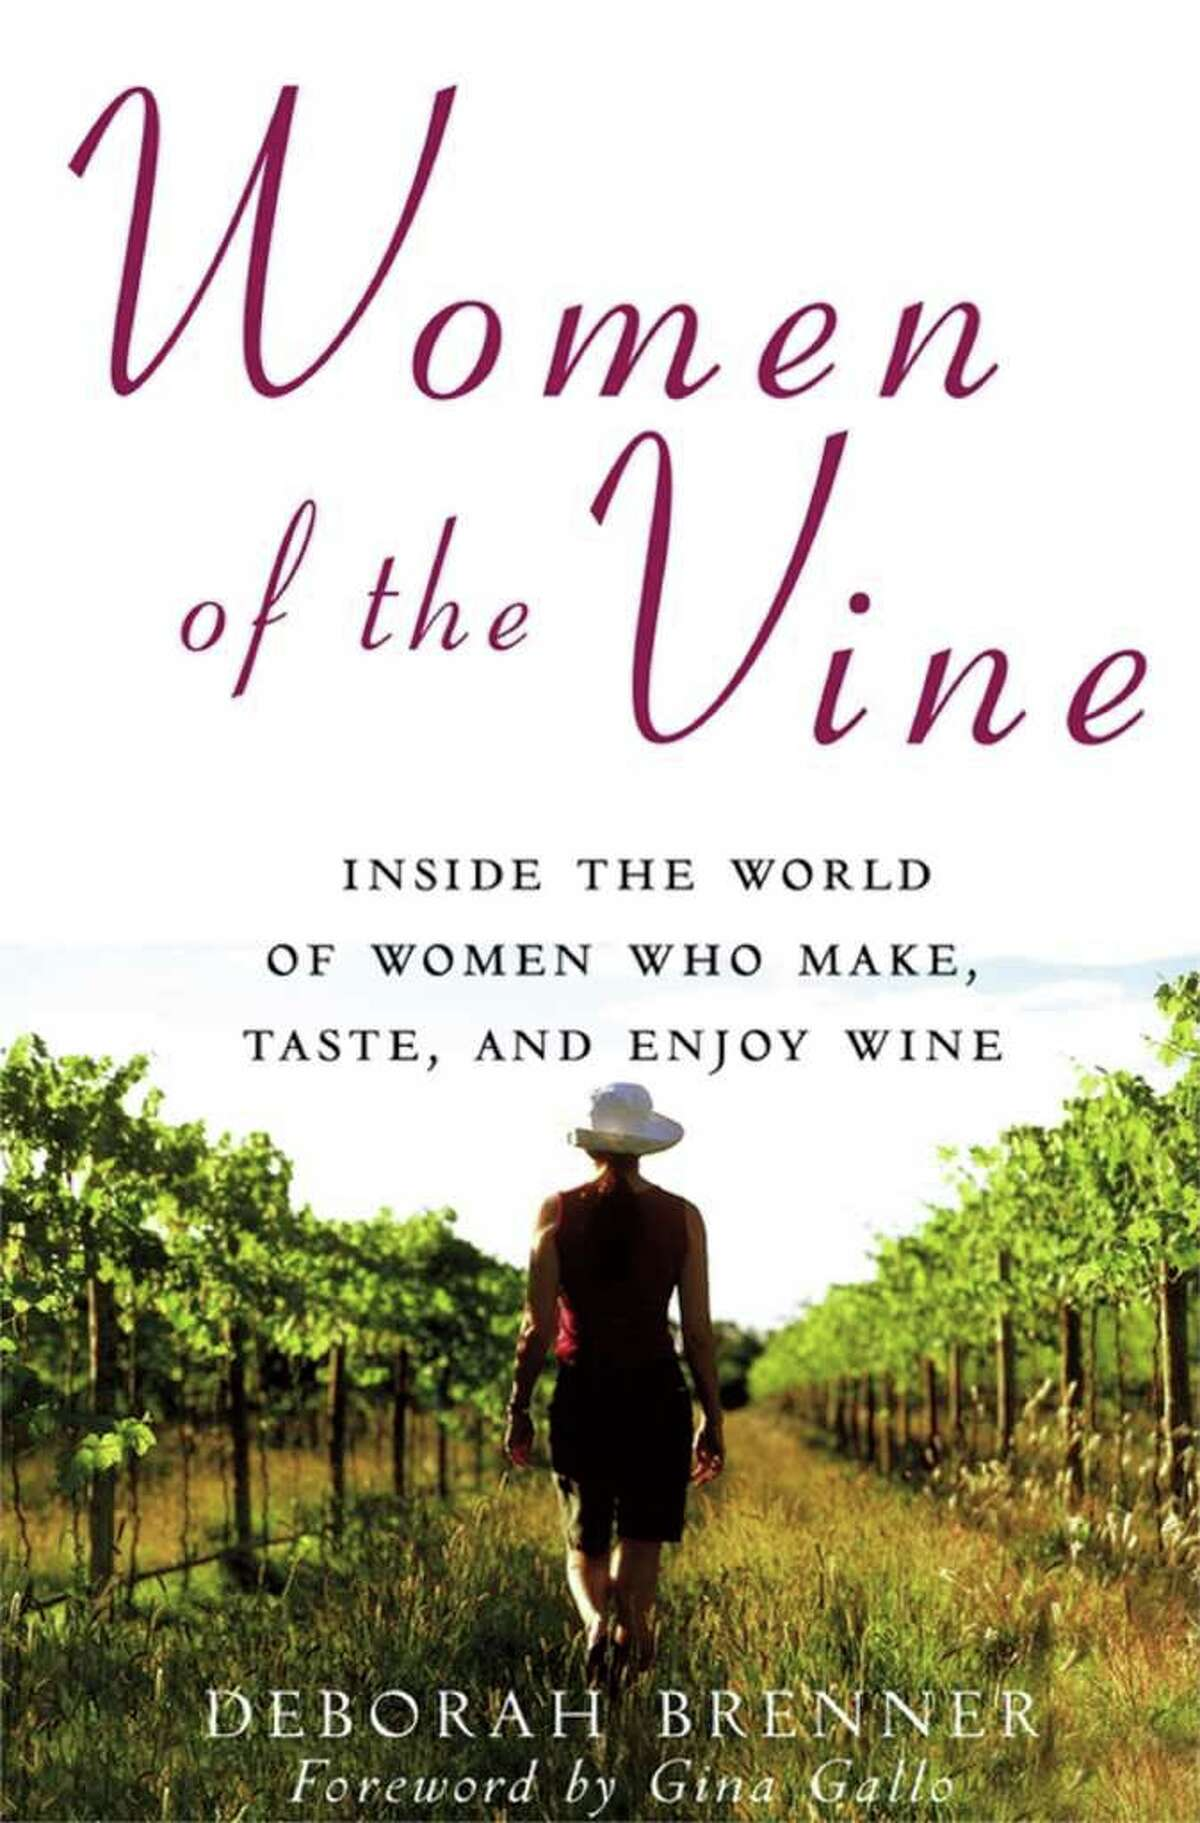 Deborah Brenner had no idea when she set out to write a 2007 book on women-run vineyards in California that it would become a new business for her.